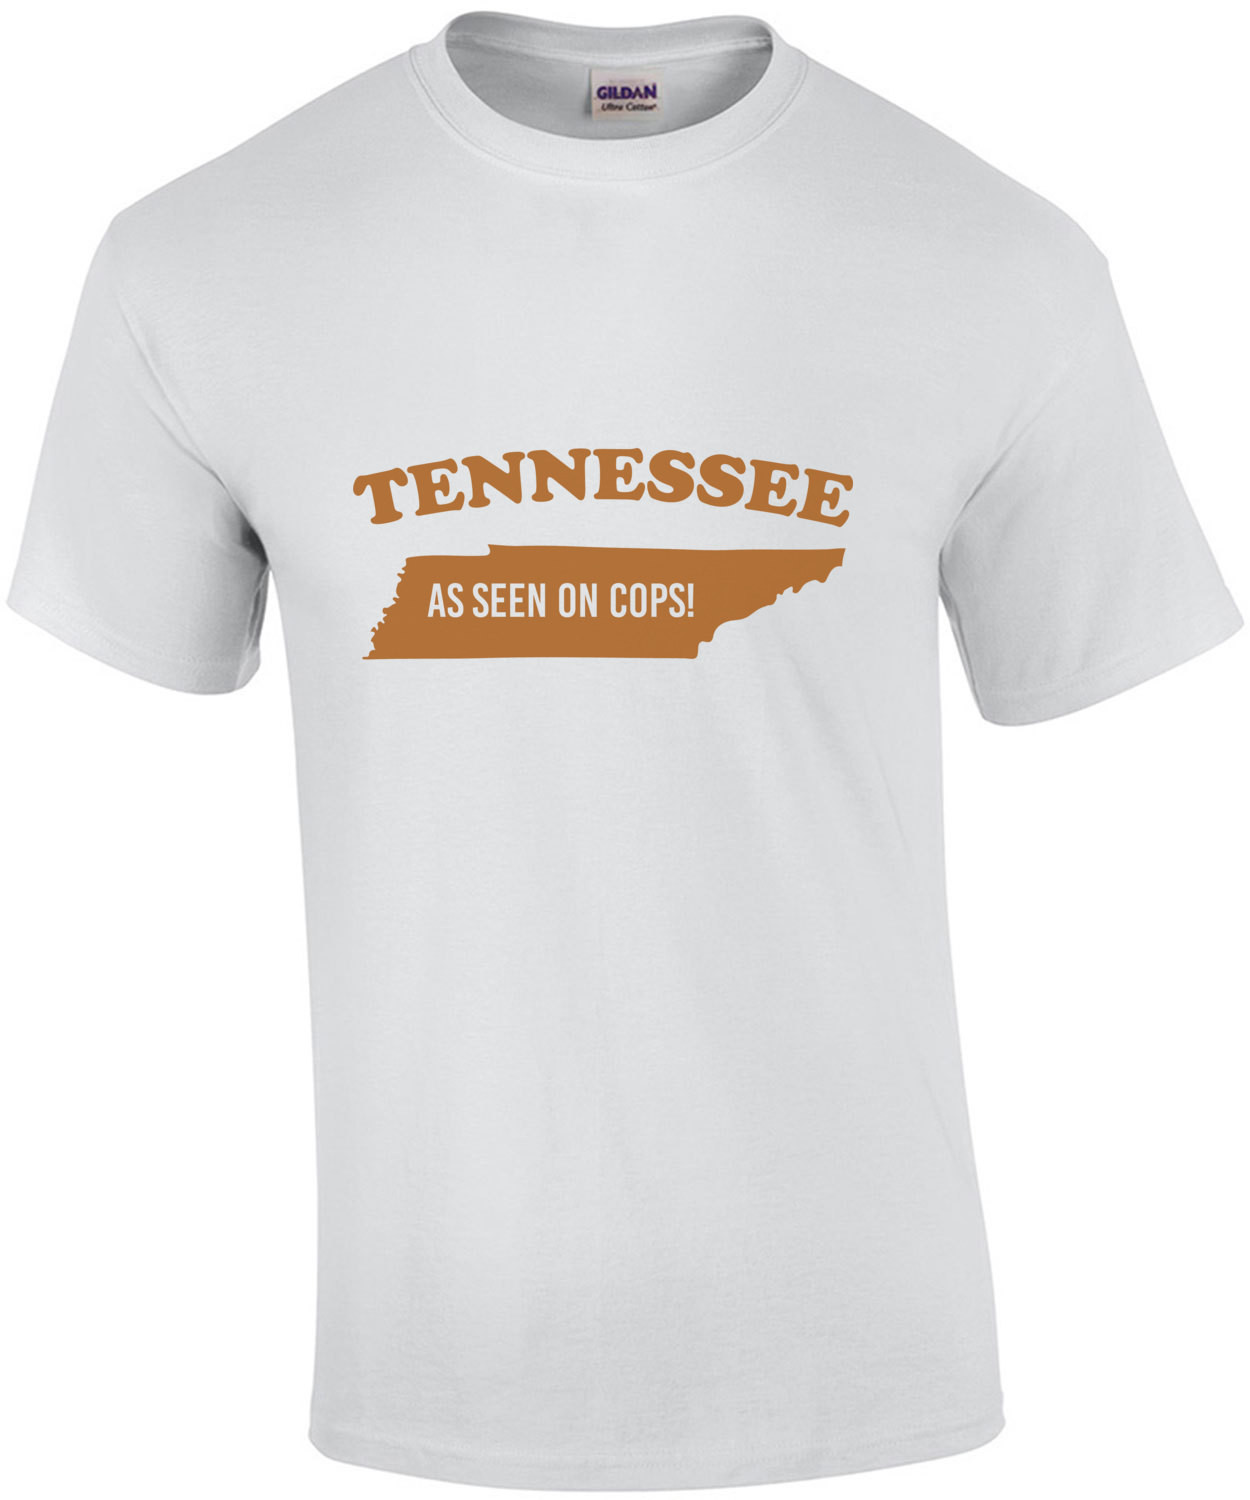 Tennesse - As seen on cops - Tennessee T-Shirt